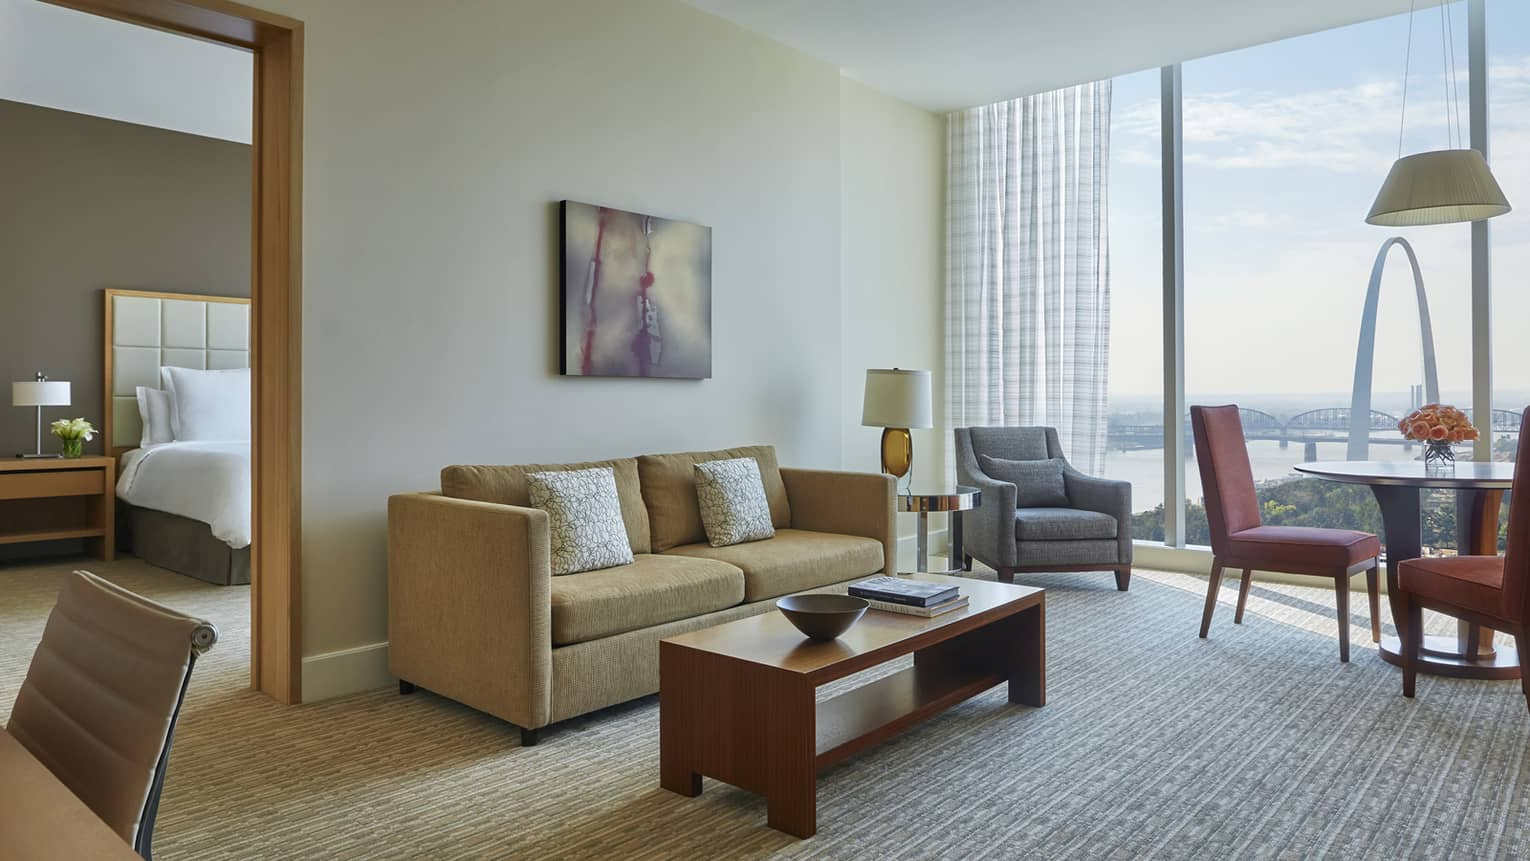 Arch one-bedroom suite living room with gold sofa, grey armchair and dining table, near separate bedroom